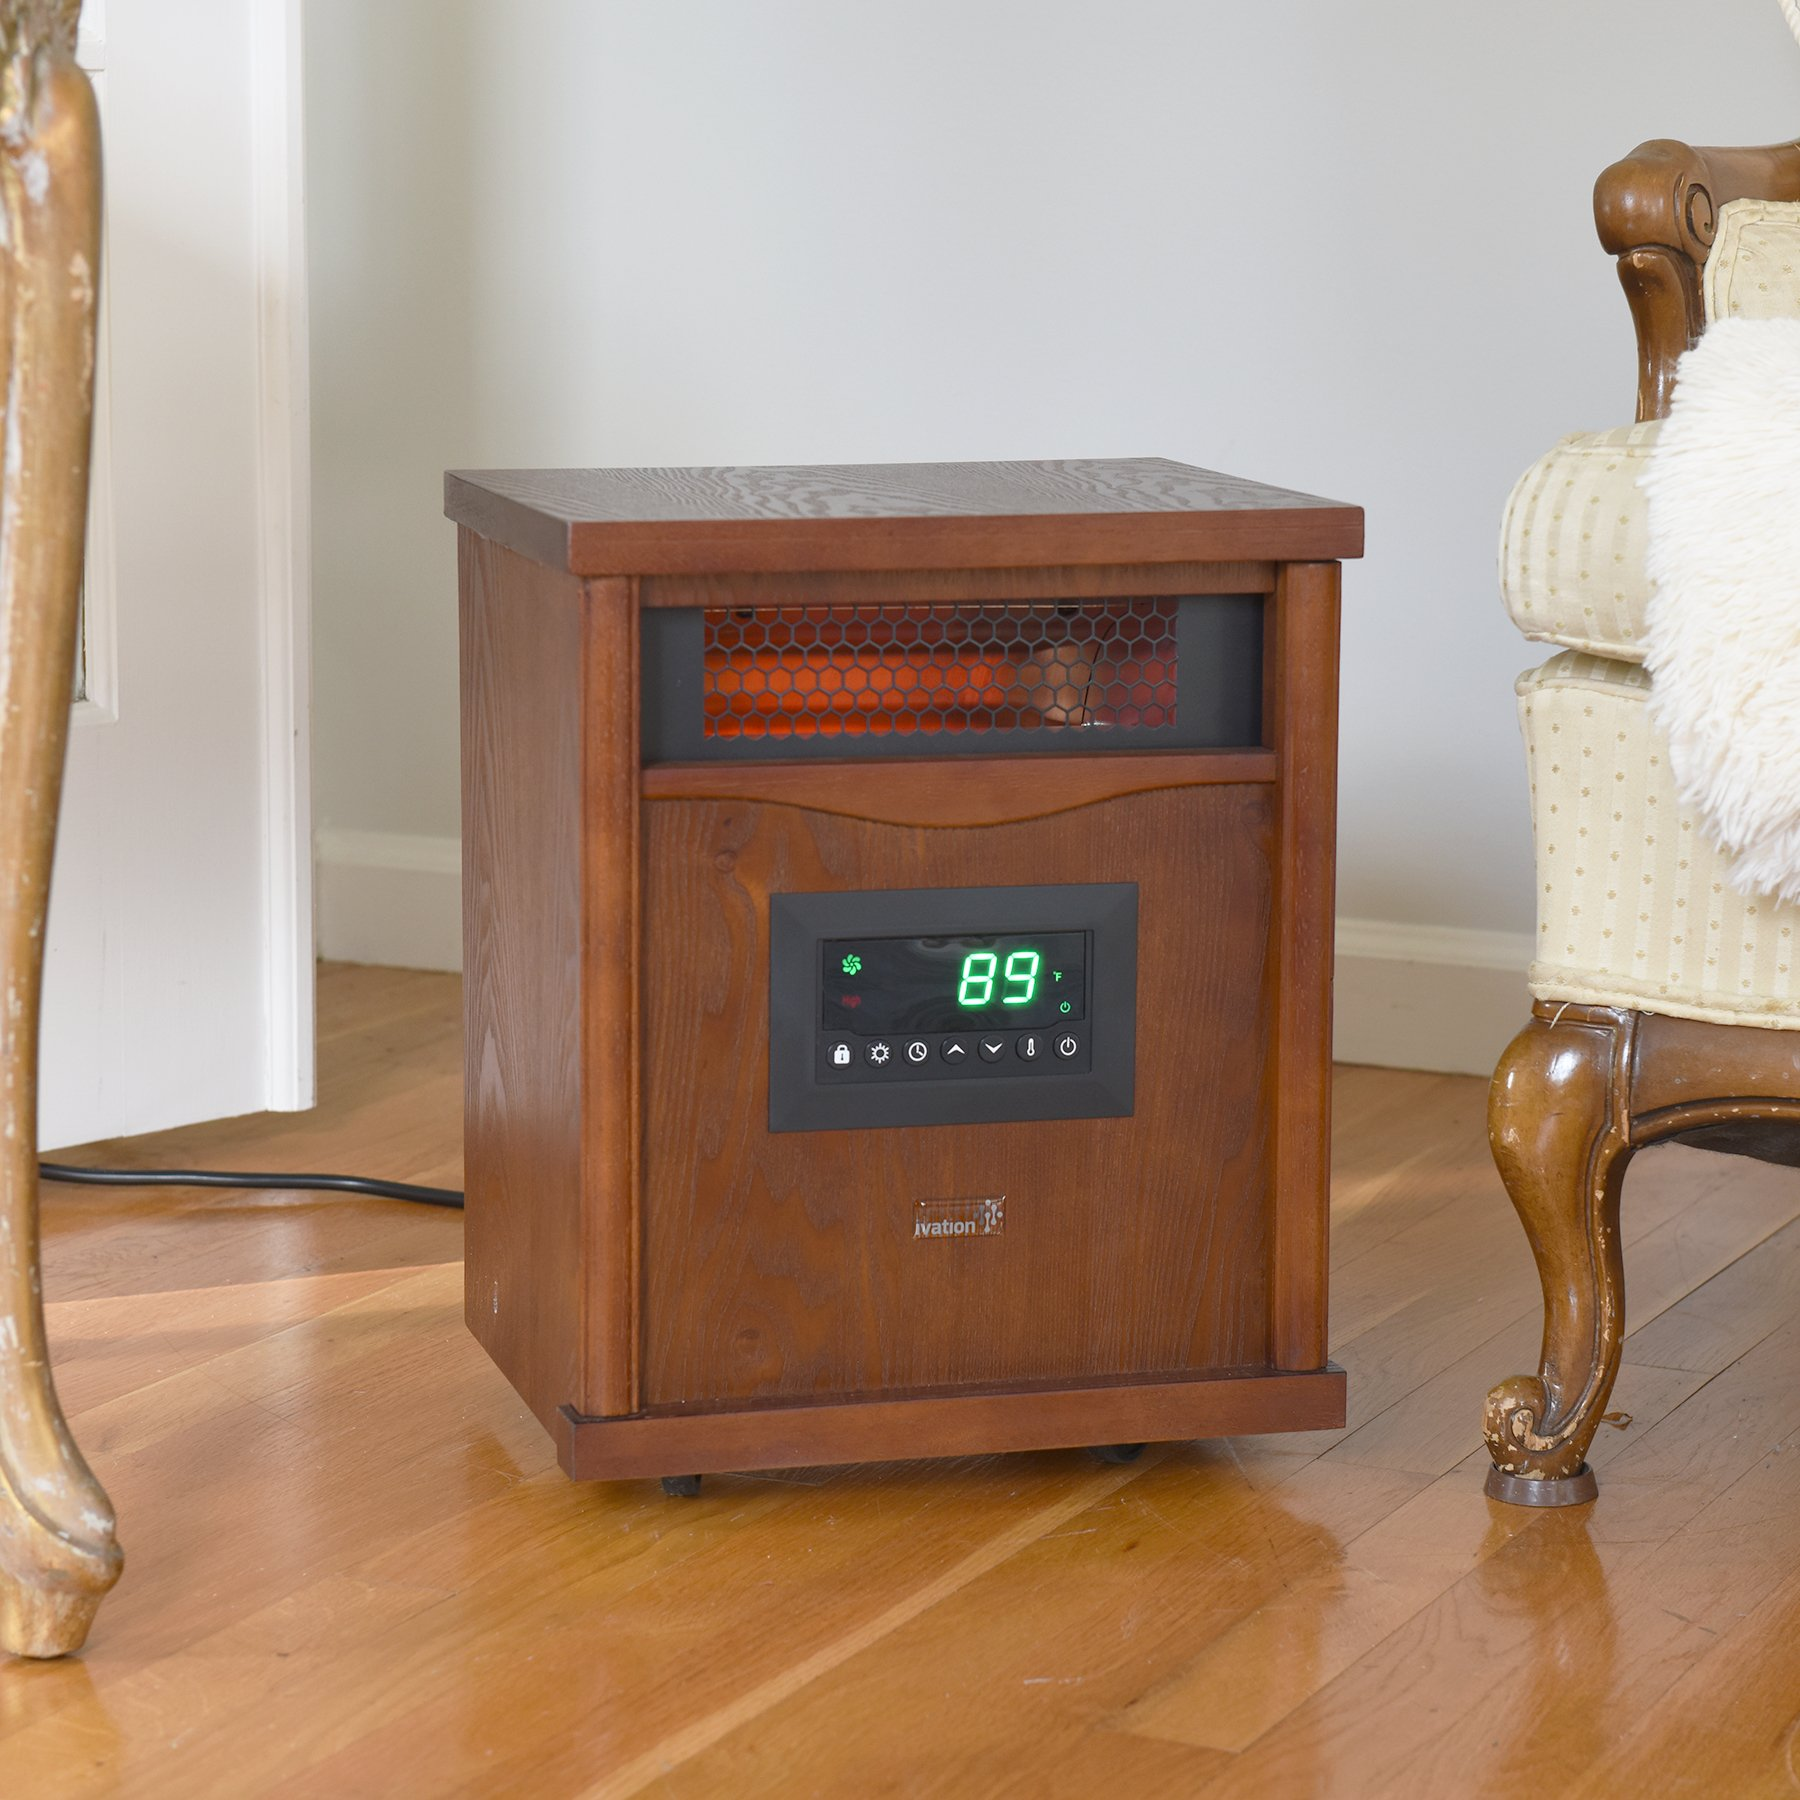 Ivation Portable Electric Space Heater, 1500-Watt 6-Element Infrared Quartz Mini Heater With Digital Thermostat, Remote Control, Timer & Filter by Ivation (Image #6)